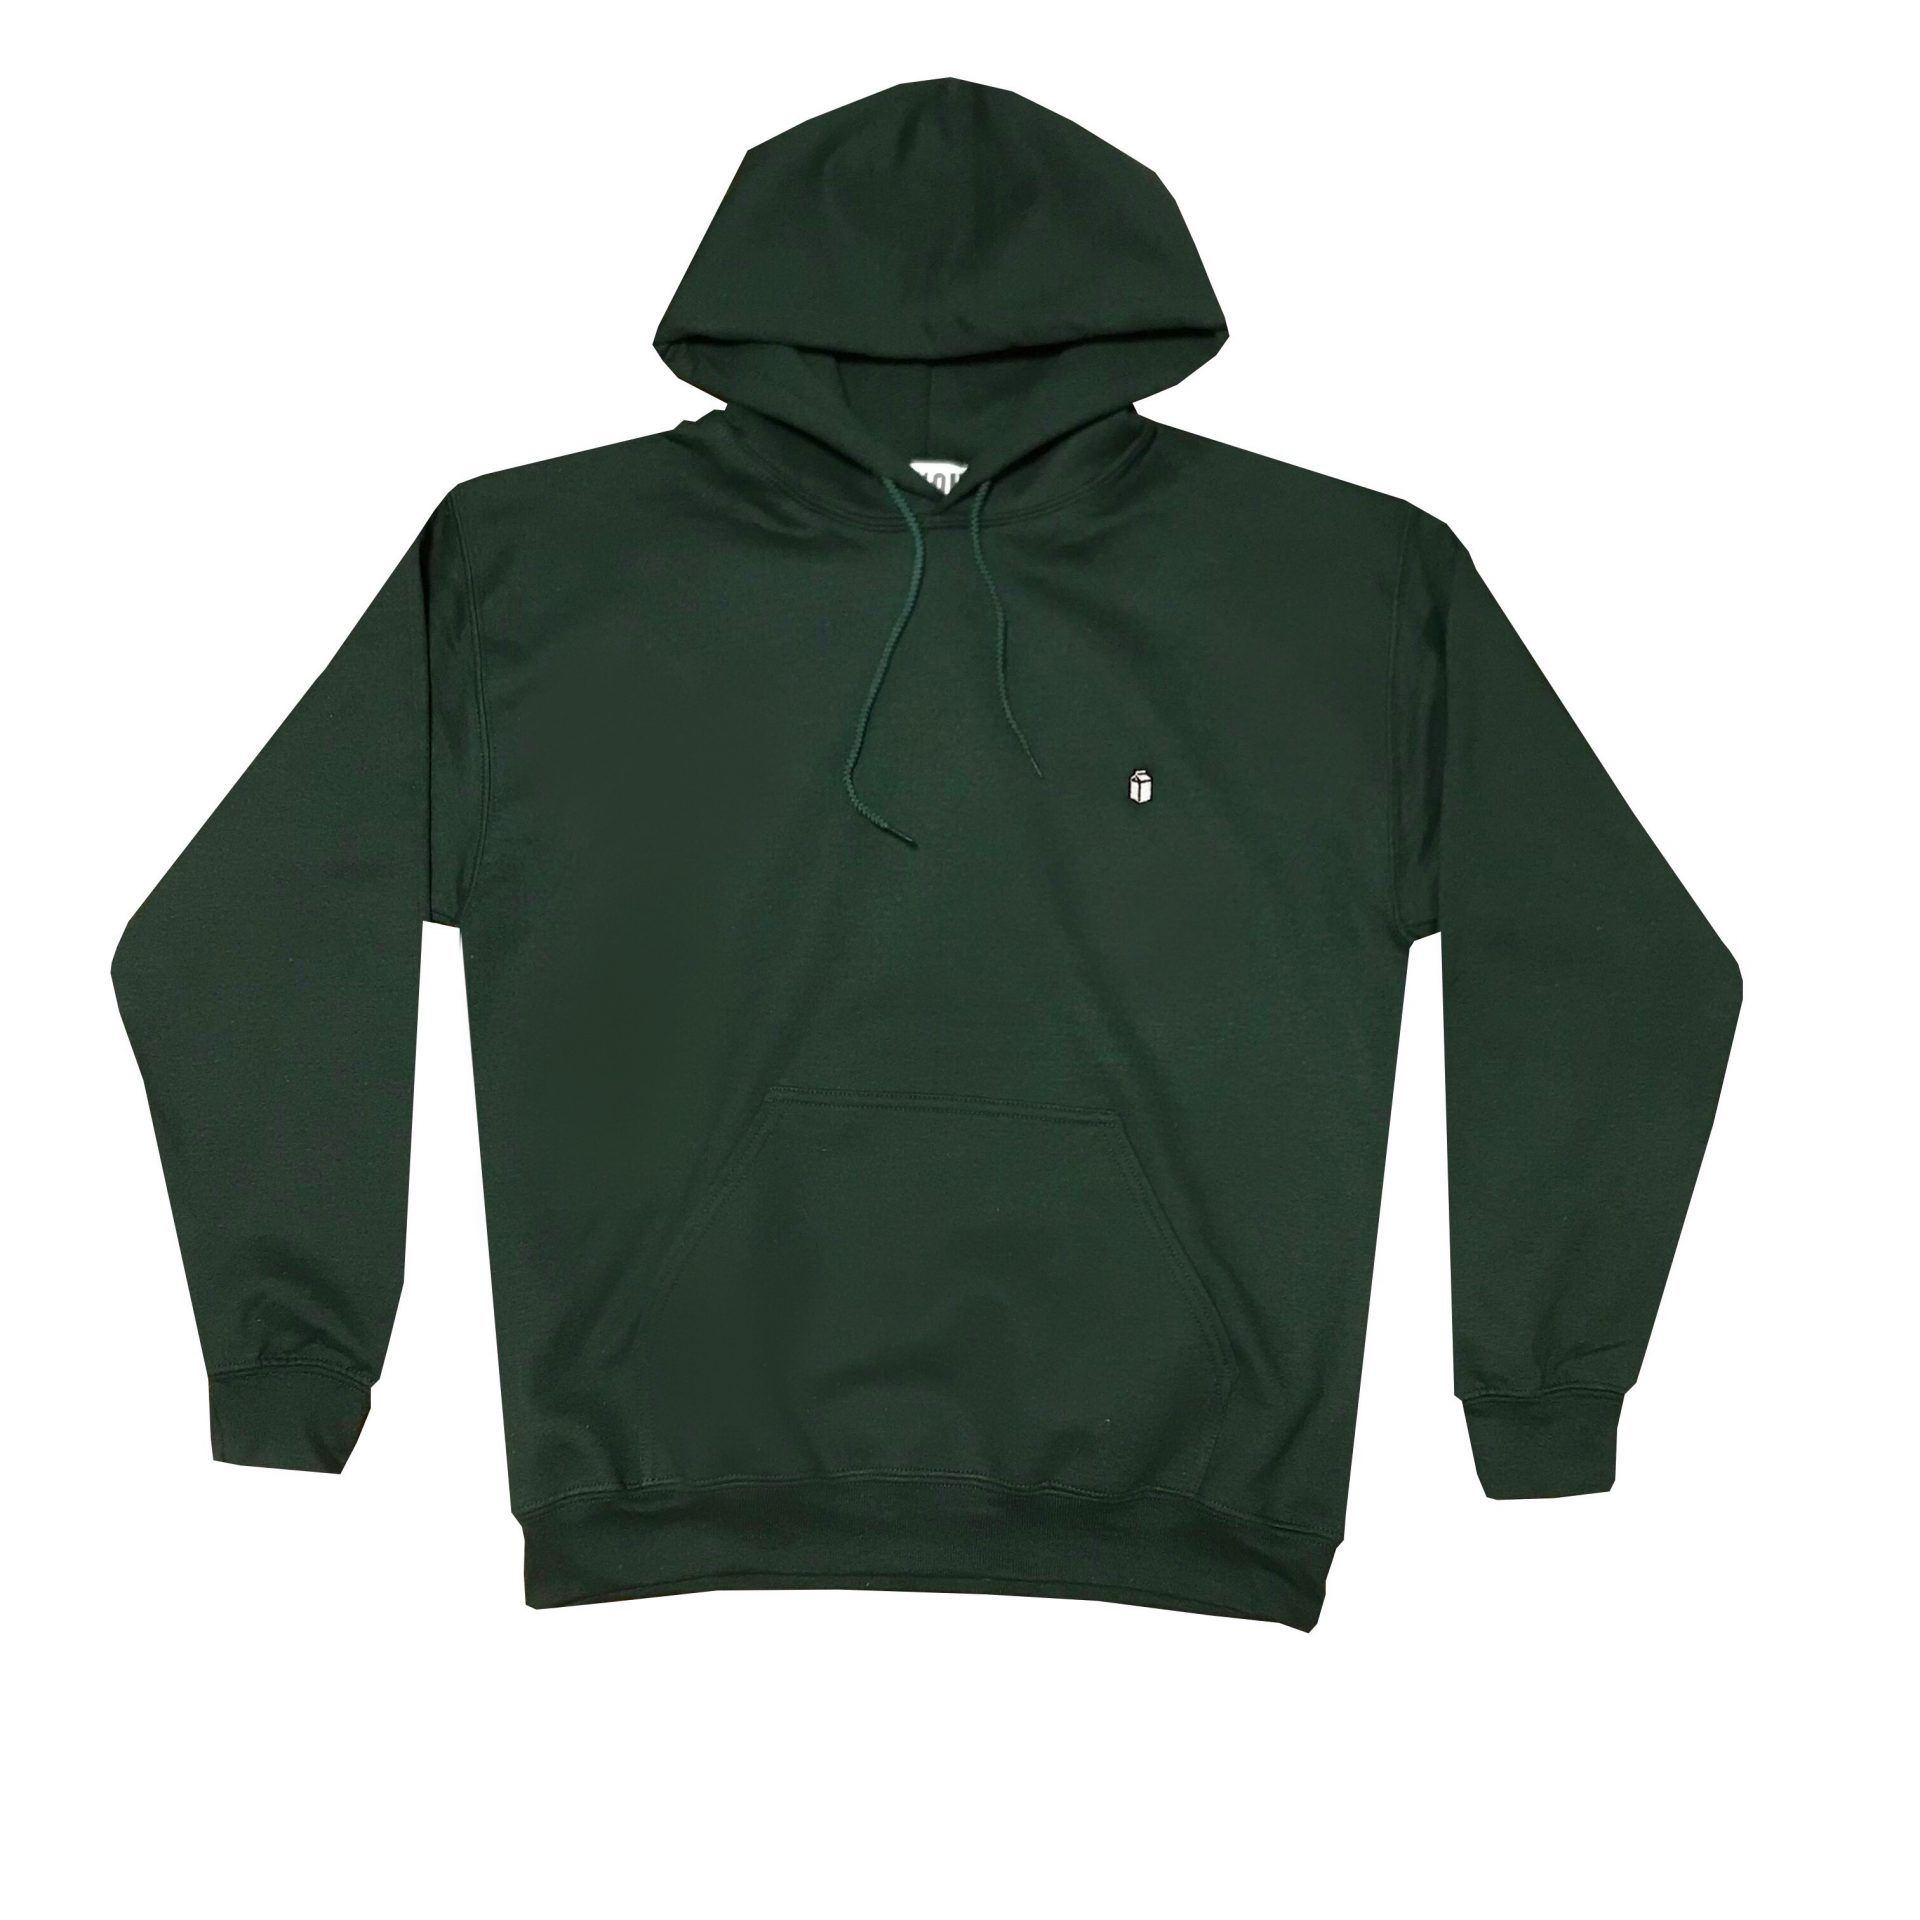 SoYou Clothing Basics Hoodie in Forest Green